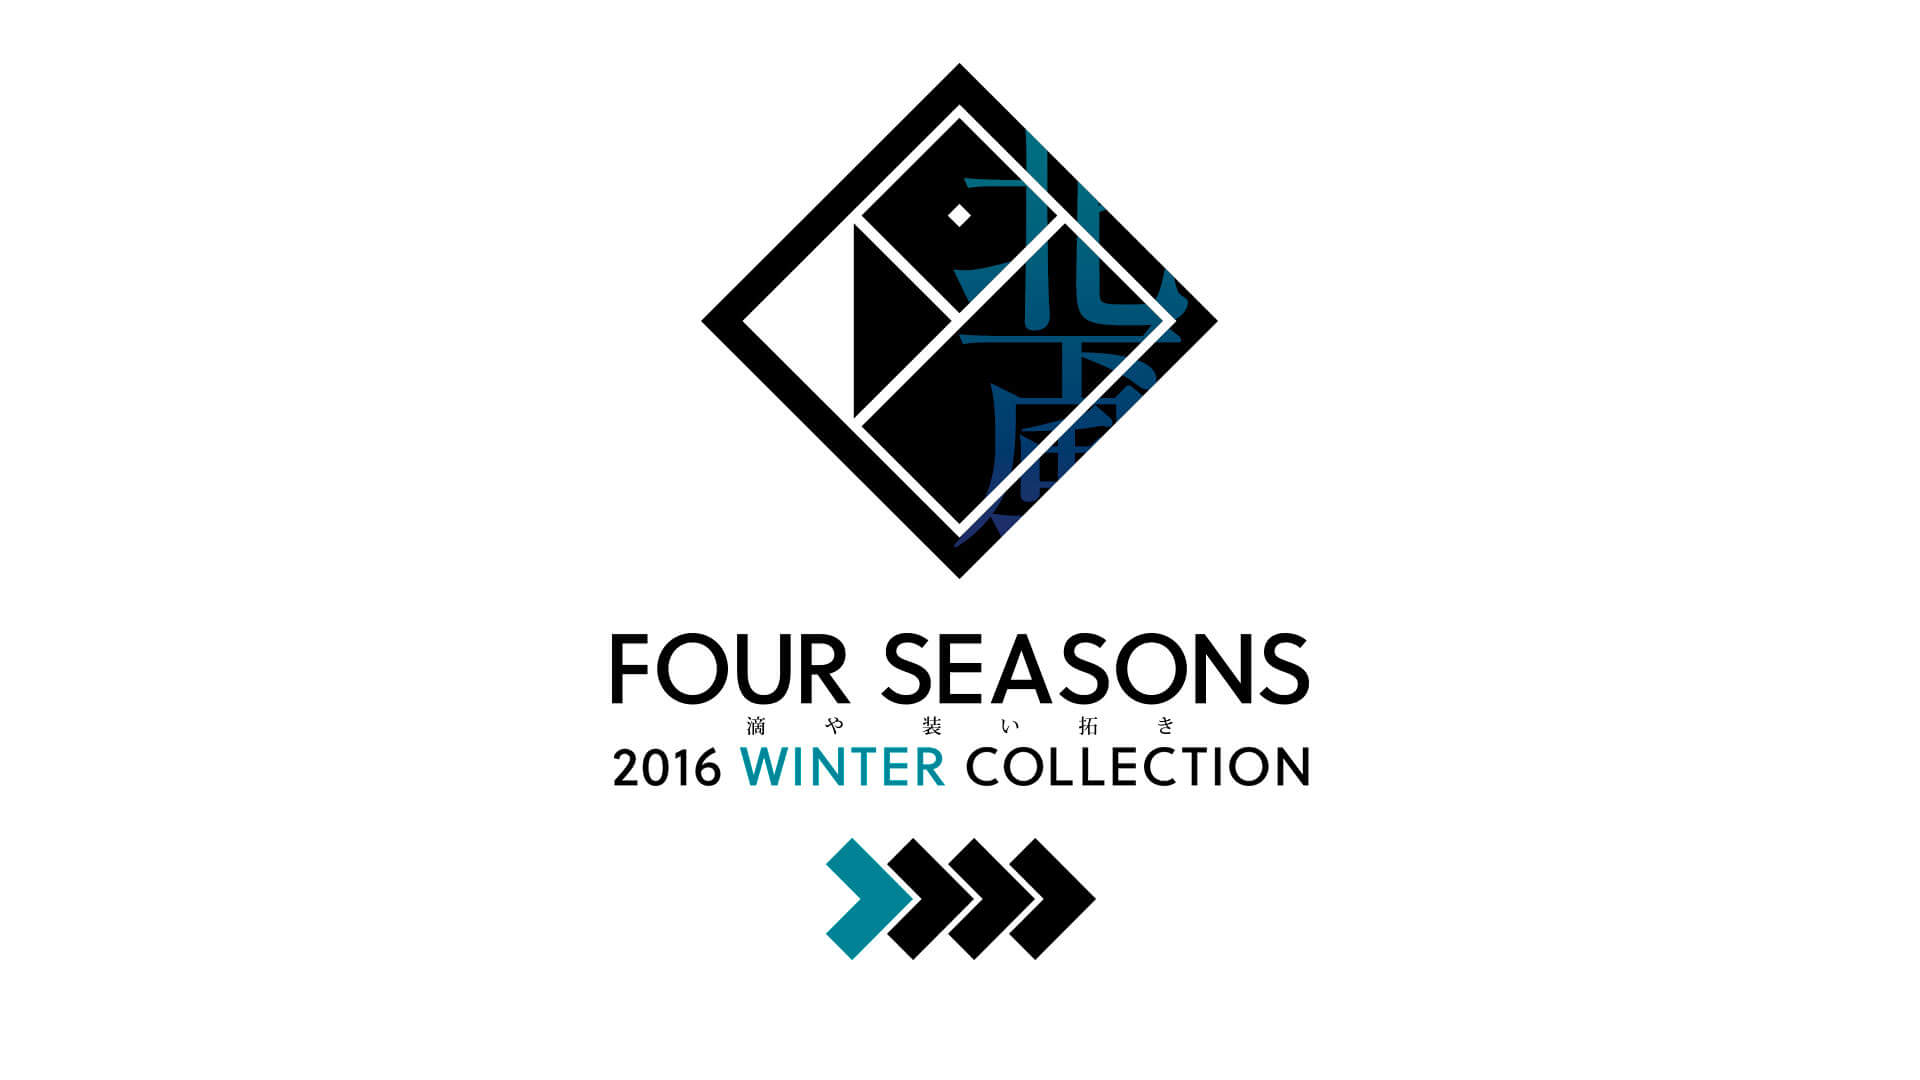 [PHOTO:FOUR SEASONS 2016 WINTER COLLECTION]